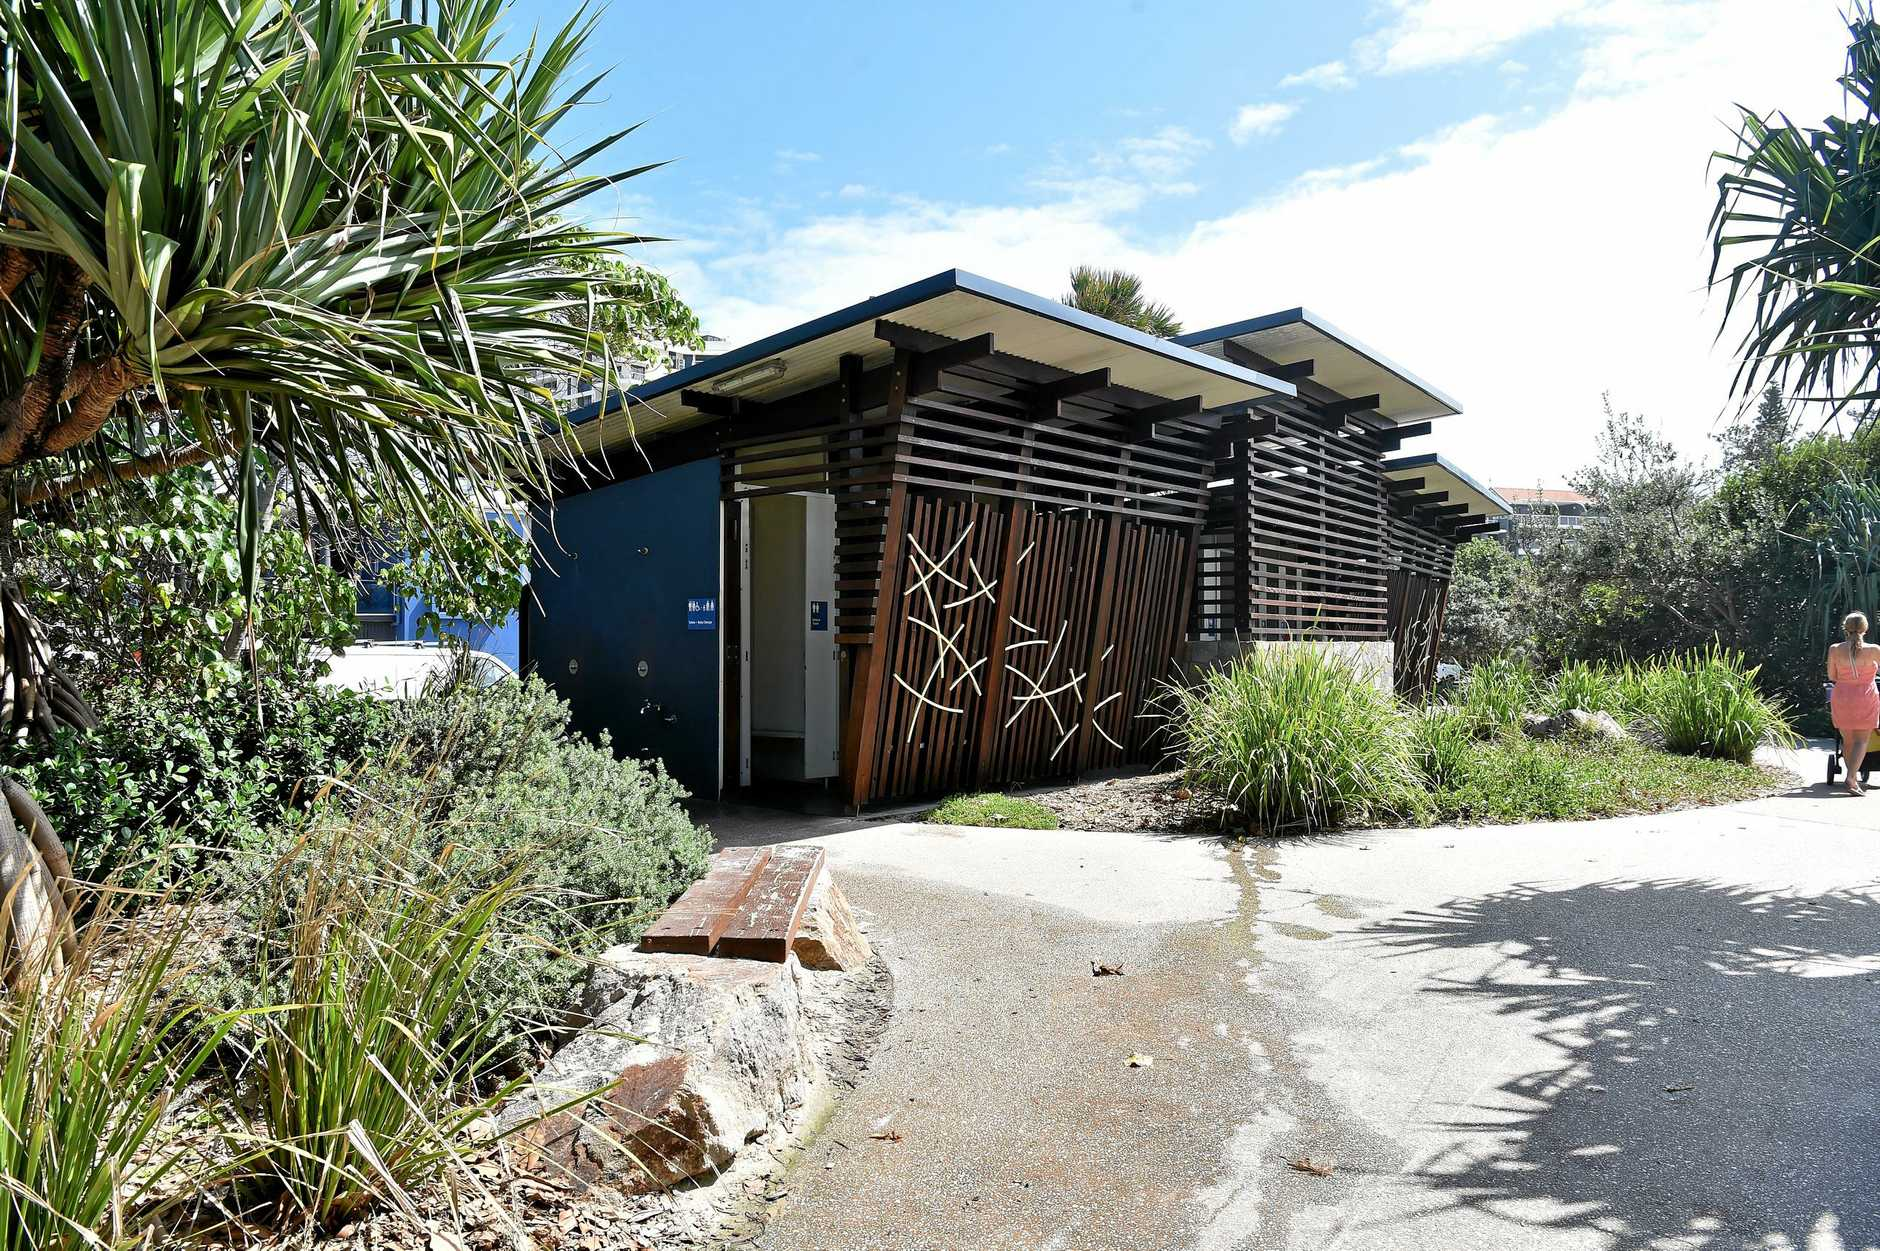 The unisex toilet at Tickle Park where a four-year-old girl was sexually assaulted in January.